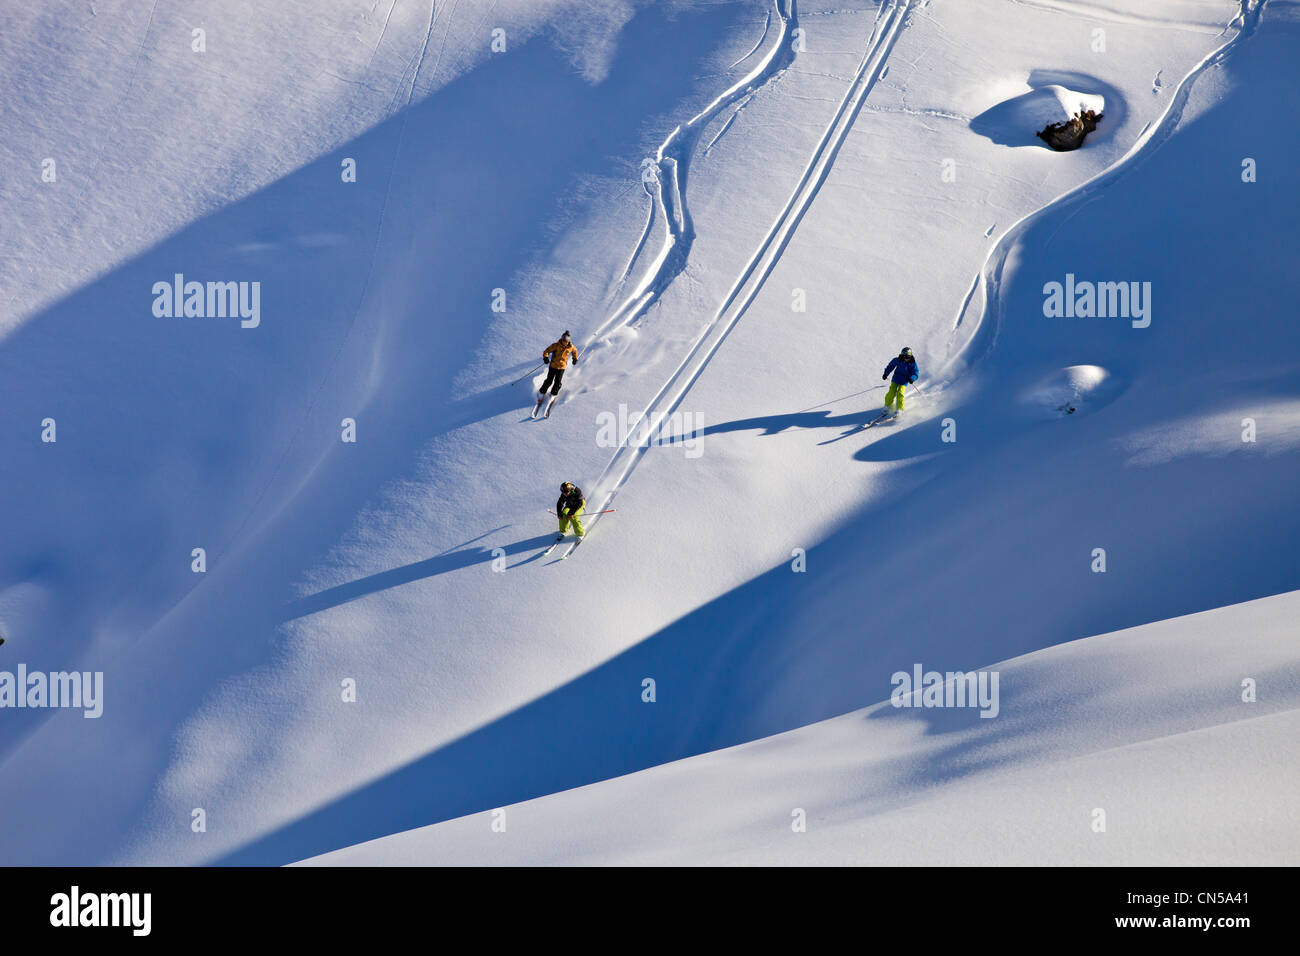 France, Savoie, Massif de La Vanoise, La Tarentaise Valley, Valmorel, teenager off-piste skiing in powder snow - Stock Image